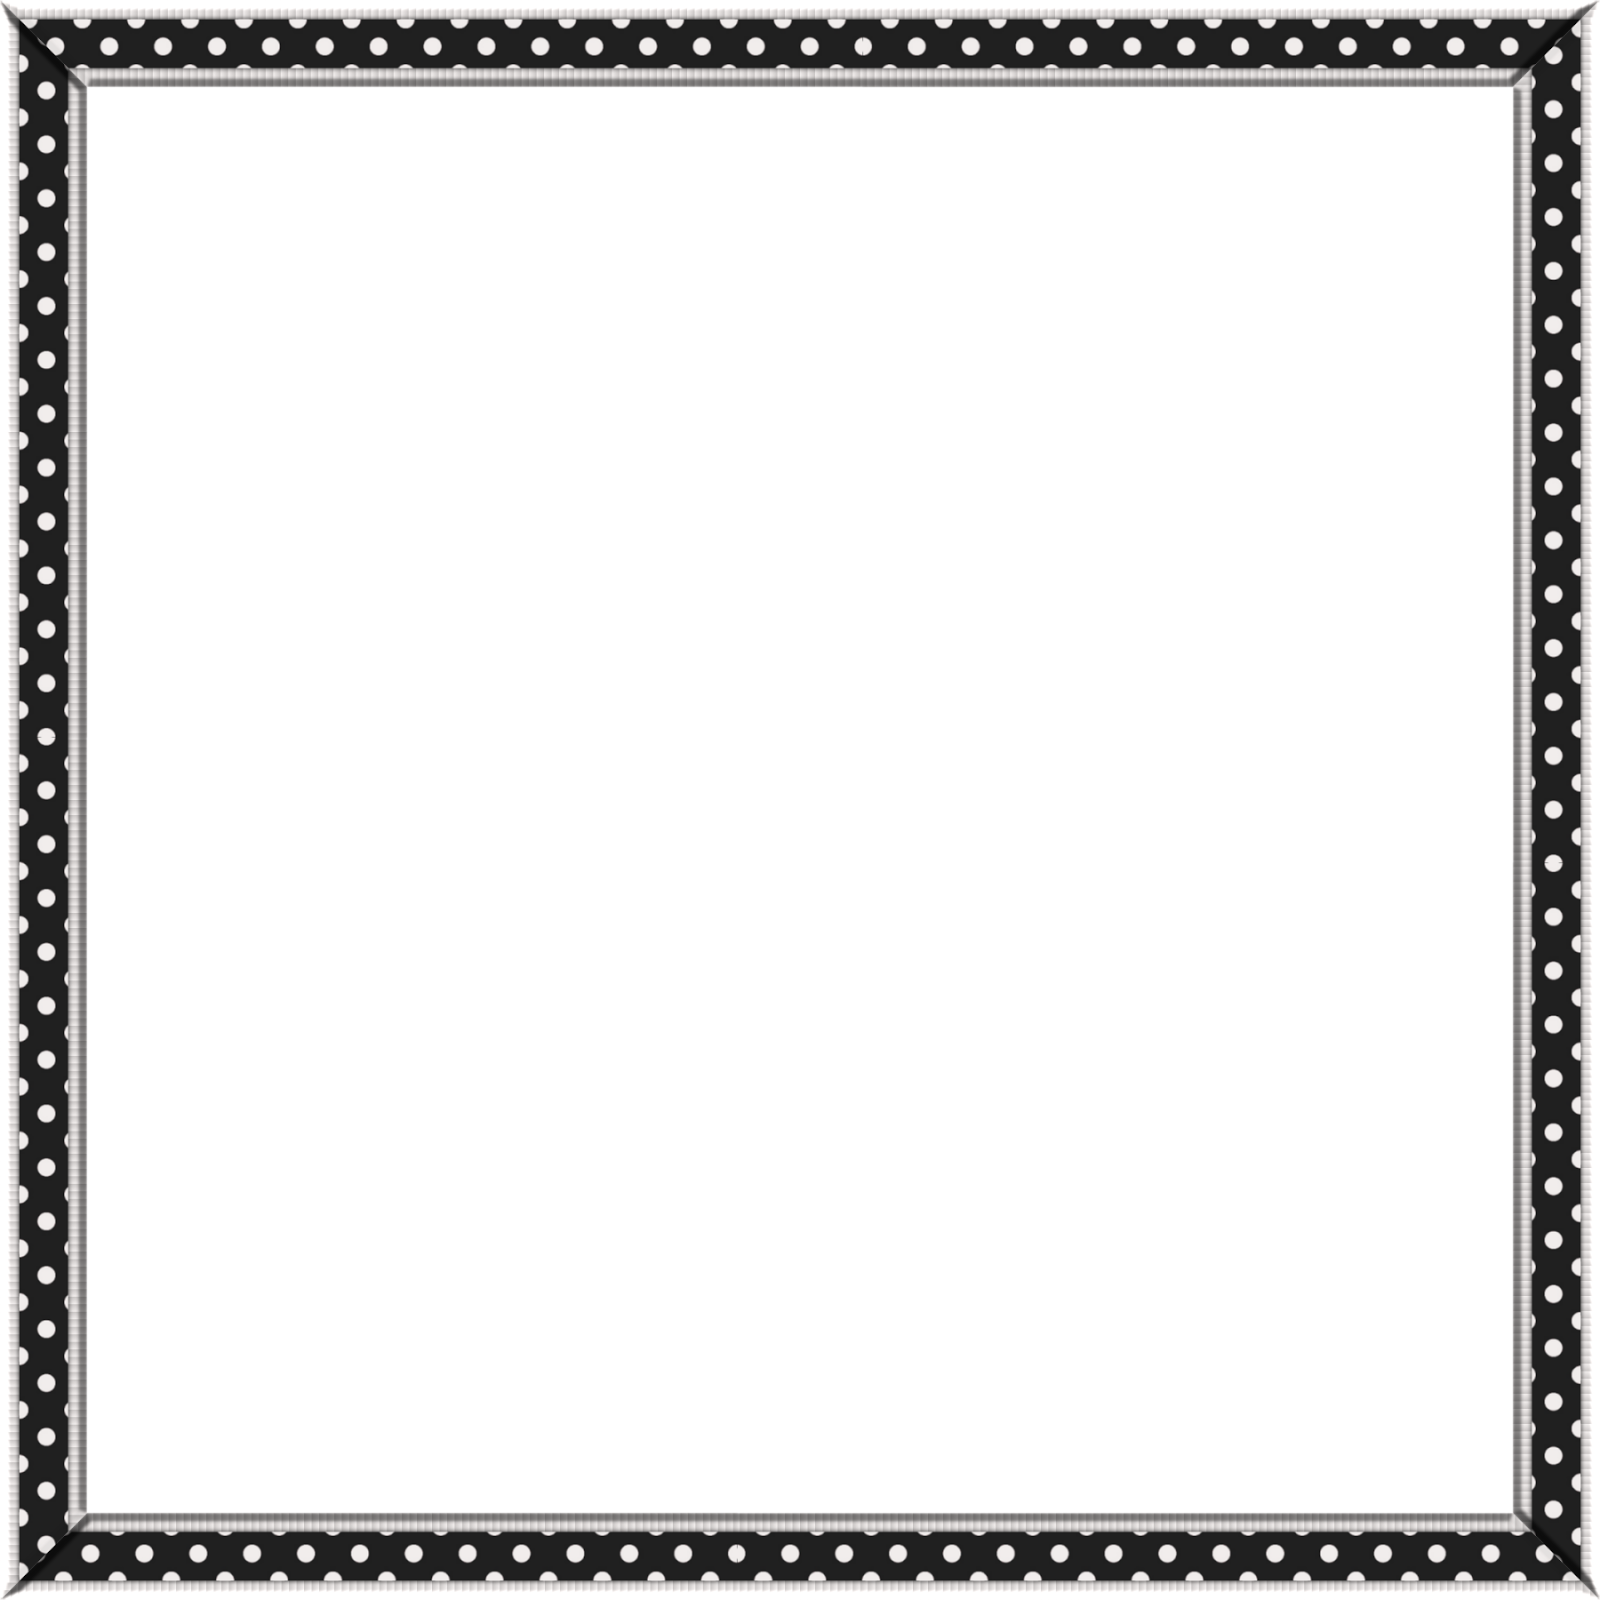 It's just a photo of Eloquent Free Printable Picture Frames and Borders